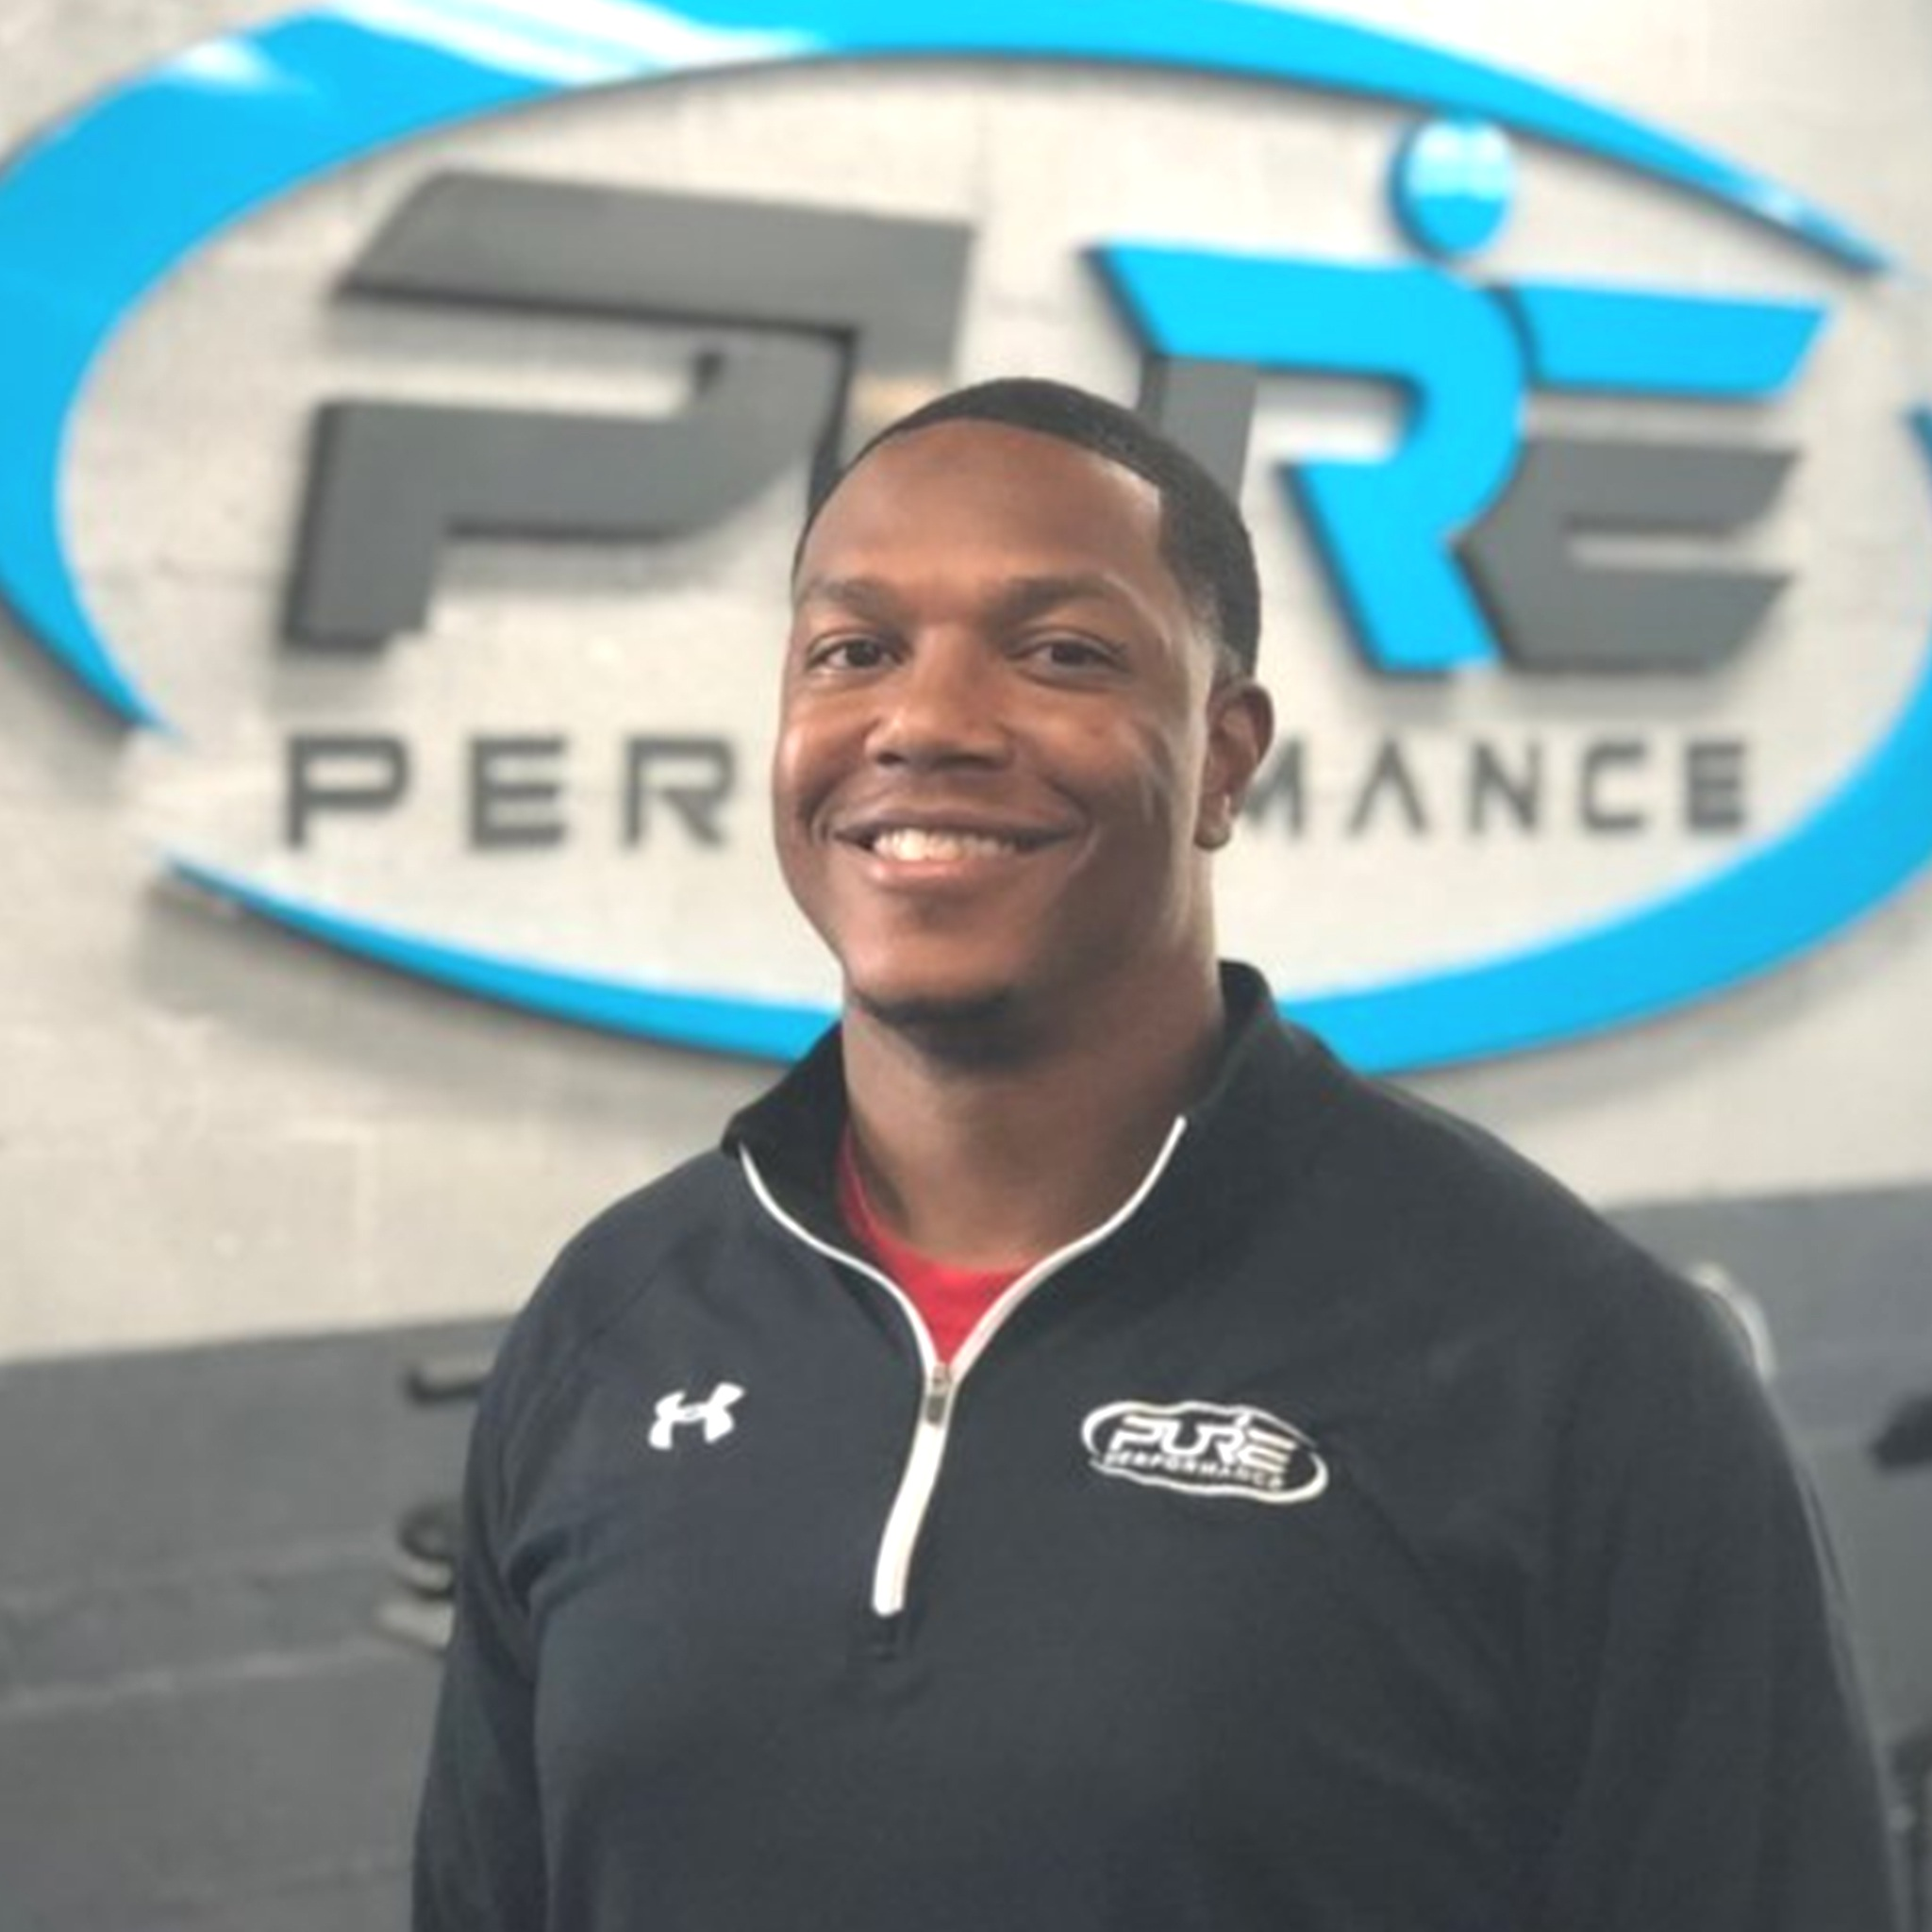 COREY HARRIS, USAW-1 Director of Team Performance Tenure: 2015-present